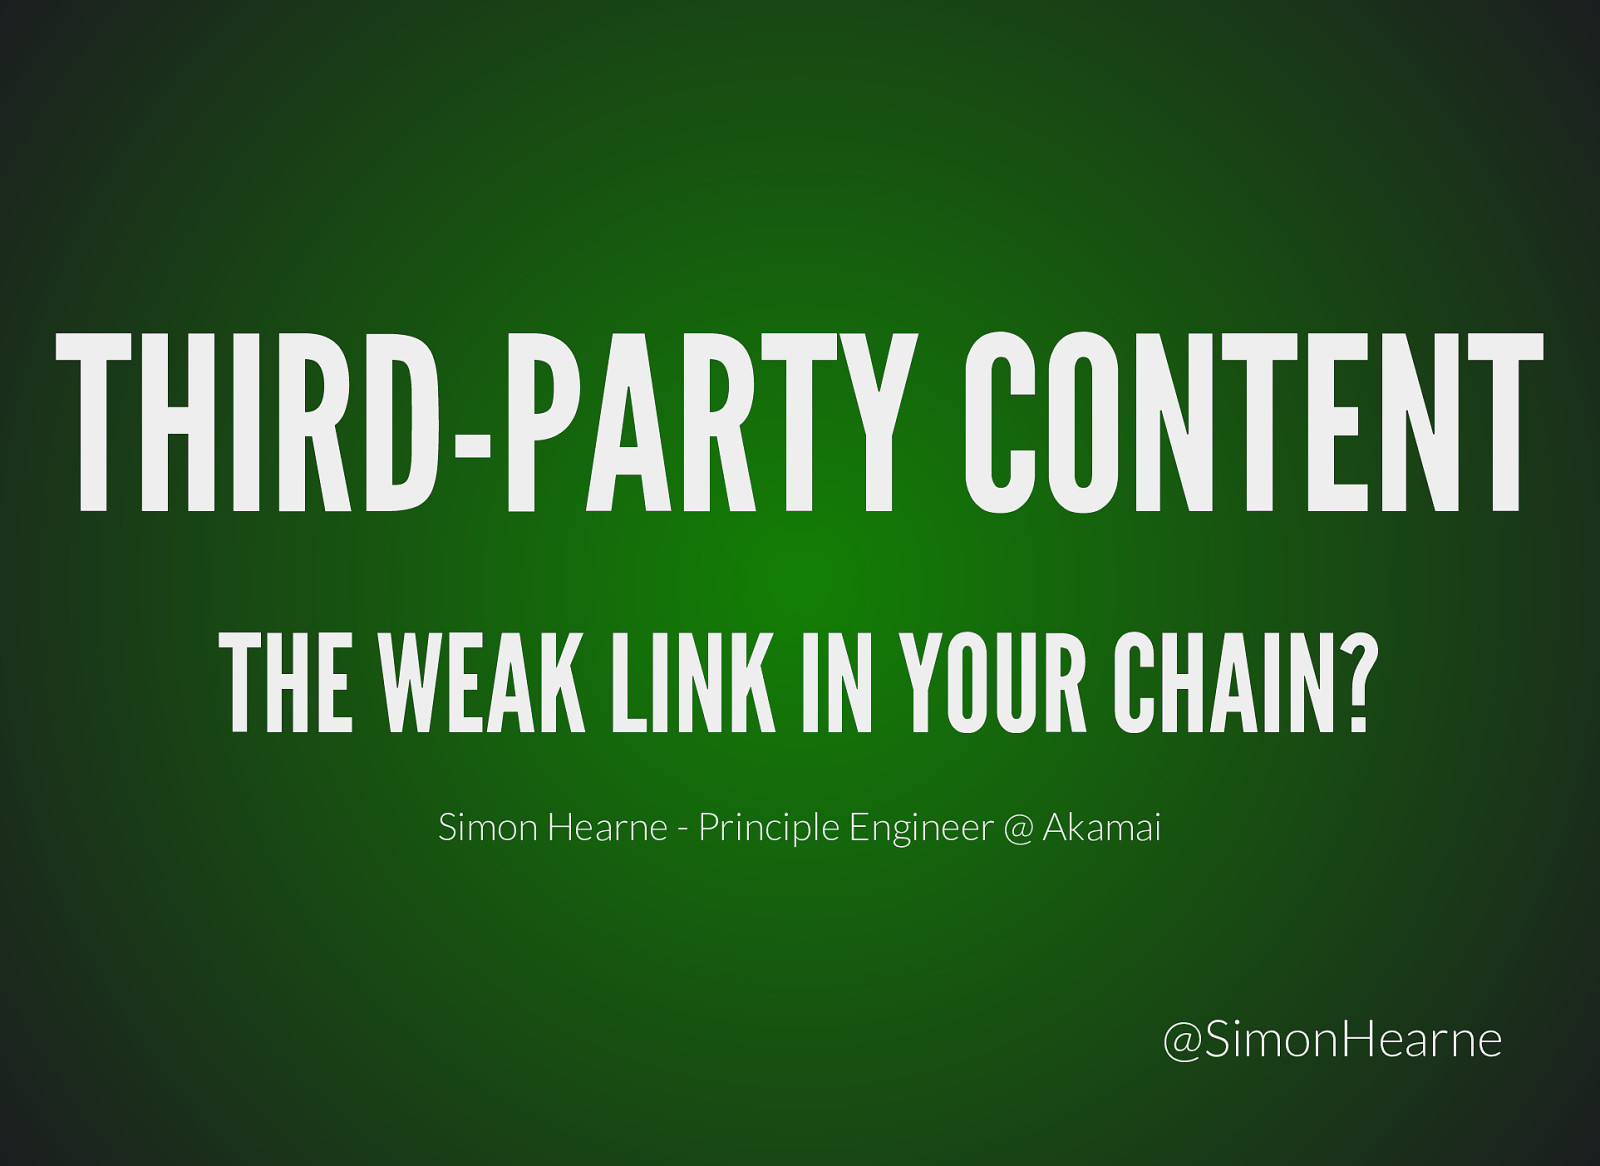 Third-party content: the weak link in the chain